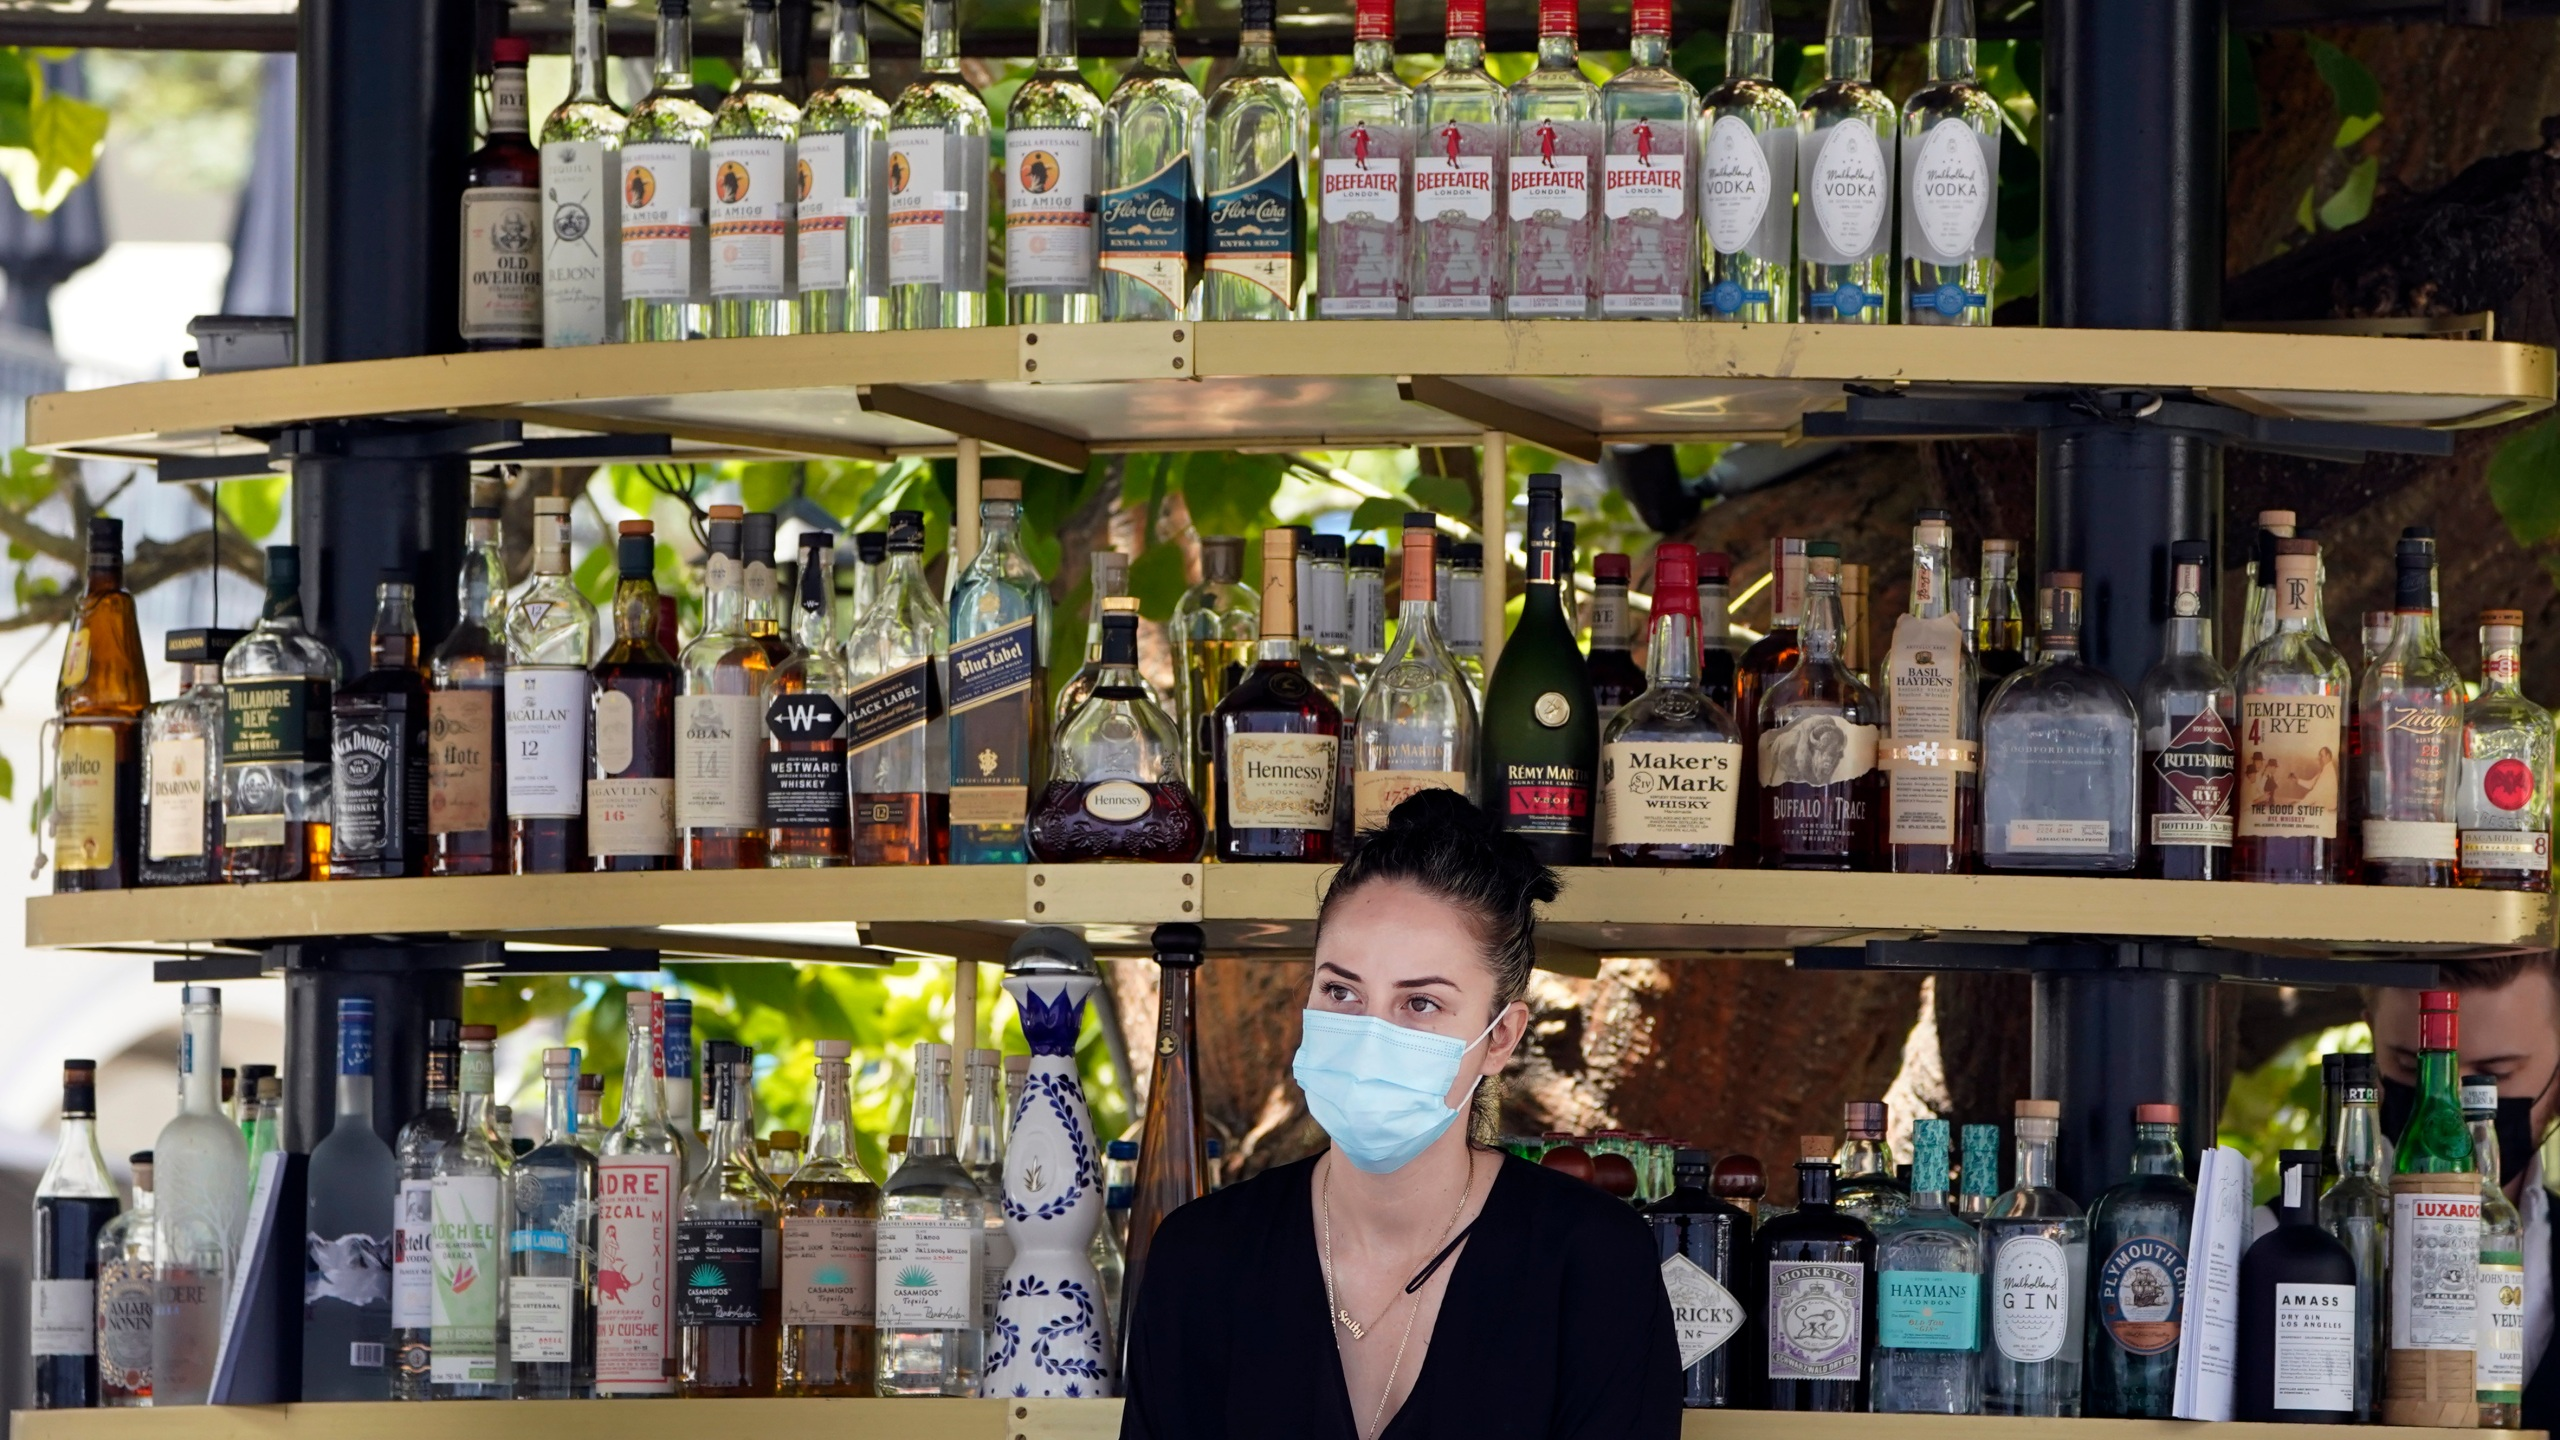 A bartender wears a mask while working at an outdoor bar amid the COVID-19 pandemic Thursday, May 20, 2021, at The Grove in Los Angeles. California regulators will shoot for a mid-June easing of workplace masking and social distancing requirements to conform with a broader state order. They asked to delay a debate Thursday on how quickly they should drop coronavirus safety rules for employees. (AP Photo/Marcio Jose Sanchez)